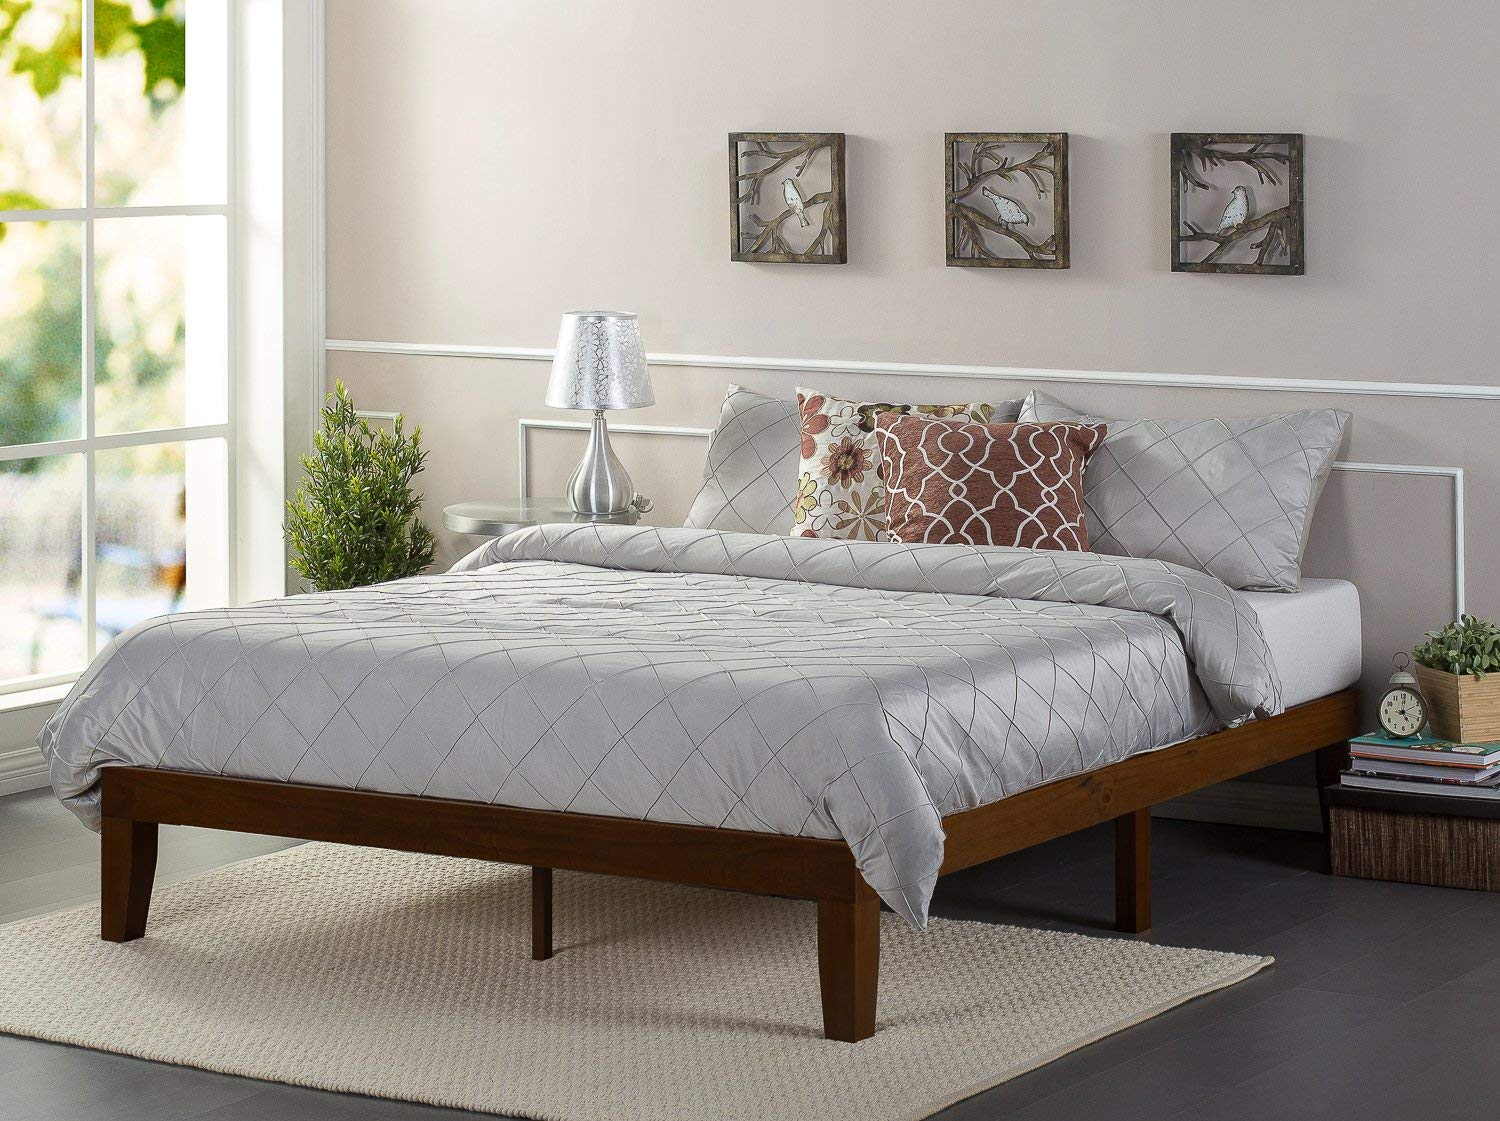 Zinus 12 Inch Wood Platform Bed review